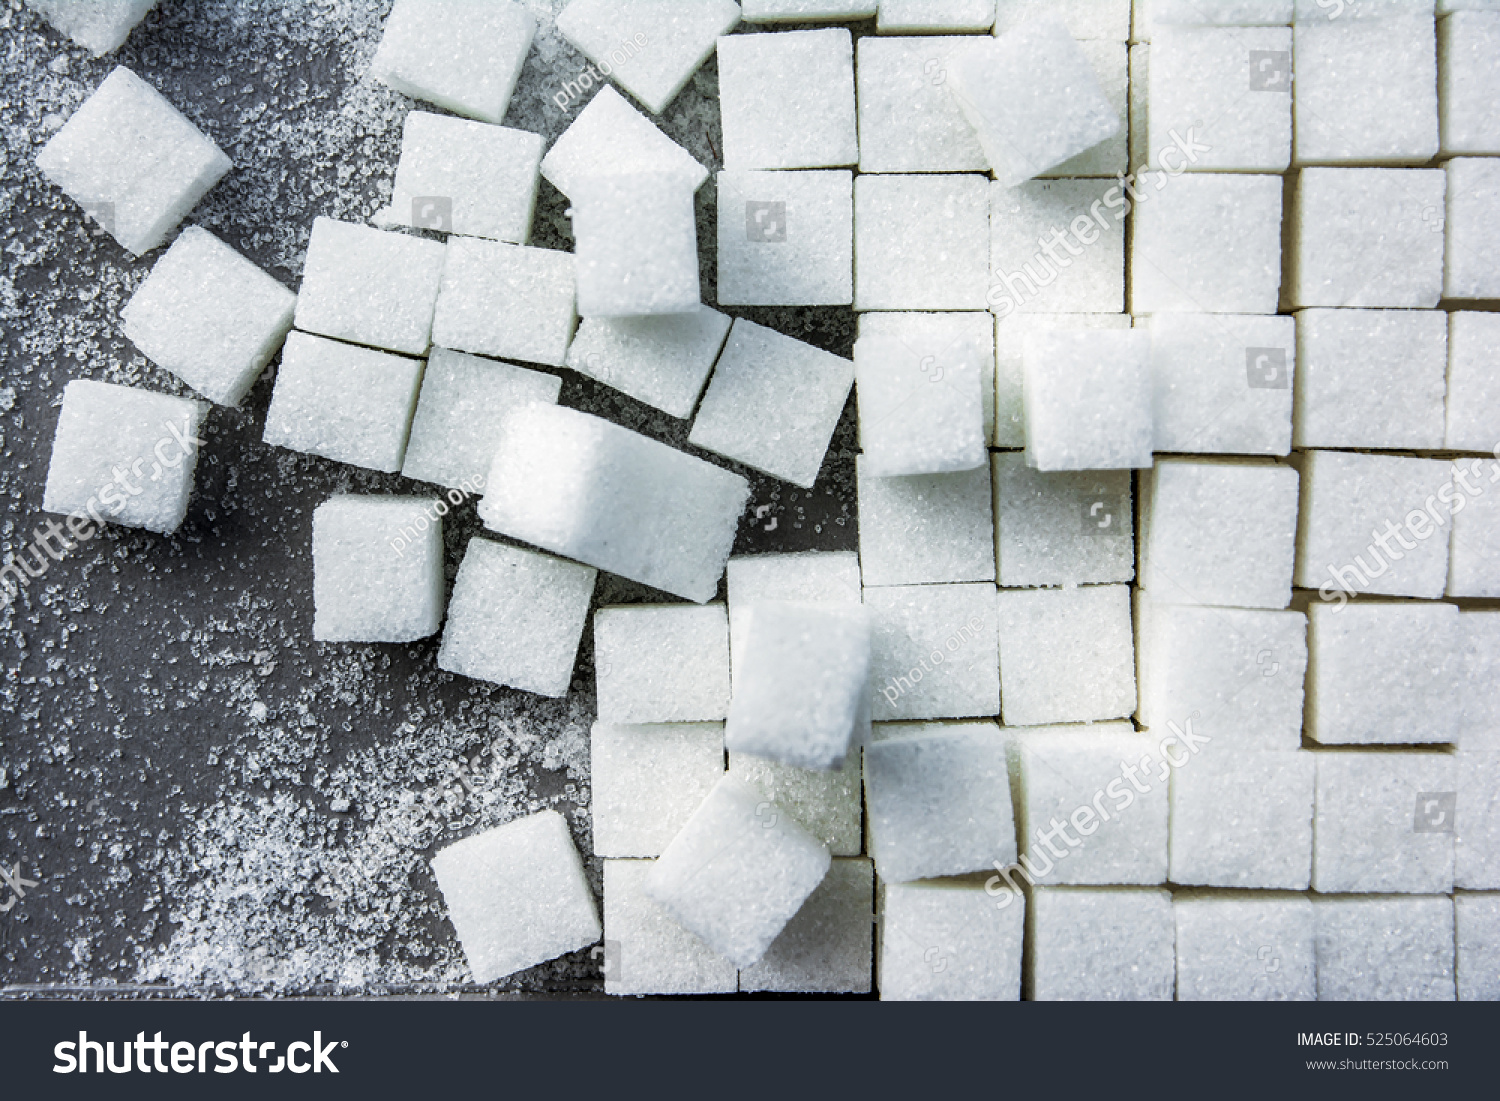 background of sugar cubes.Cube sugar background #525064603